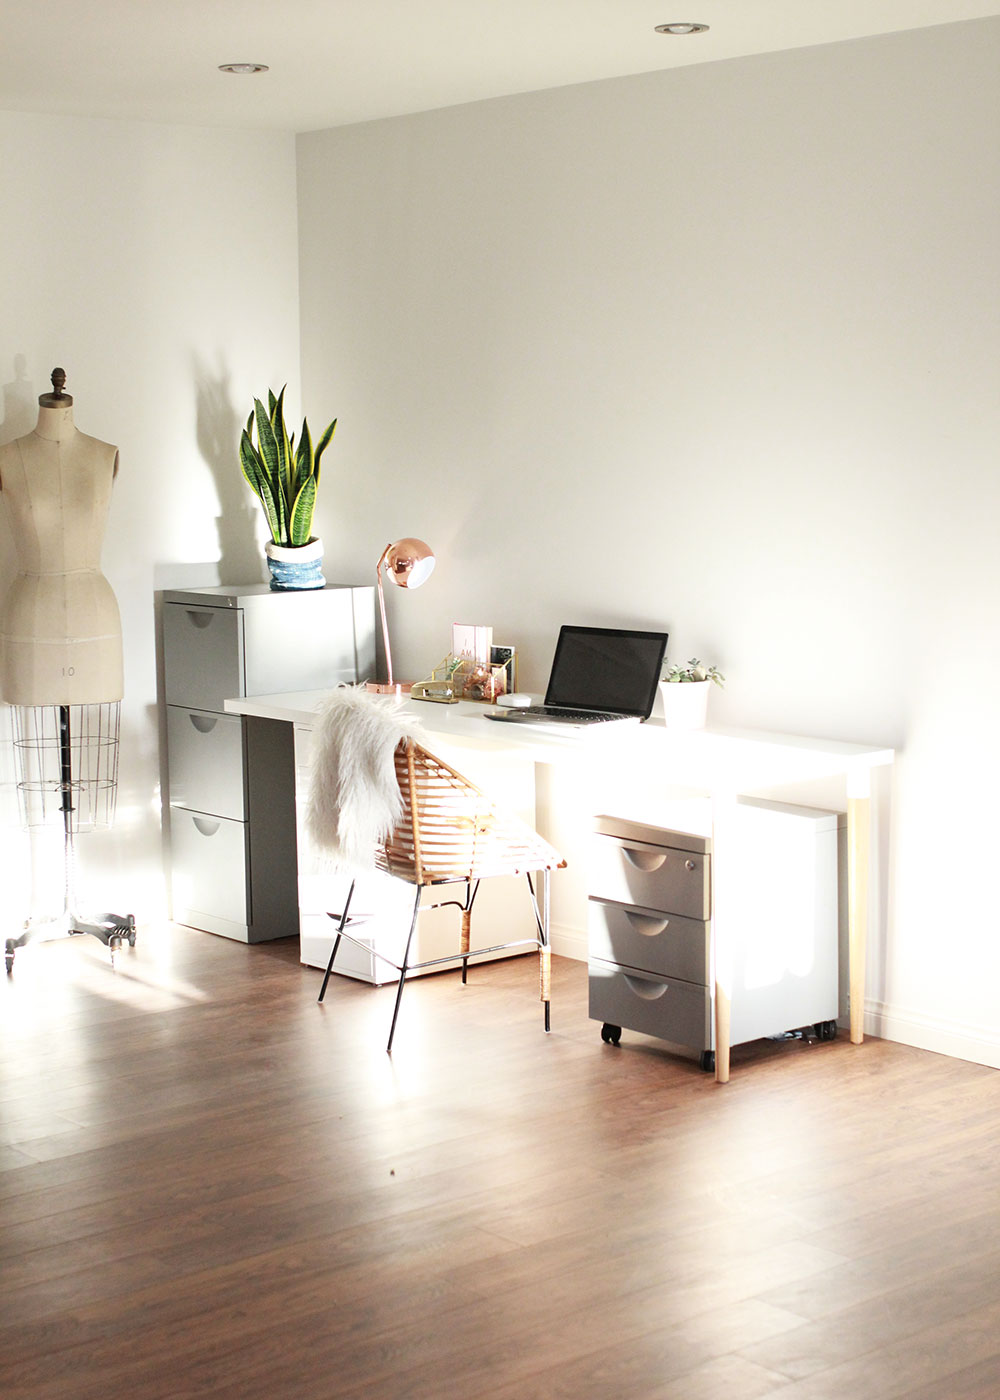 a little corner home office | thelovedesignelife.com #homeoffice